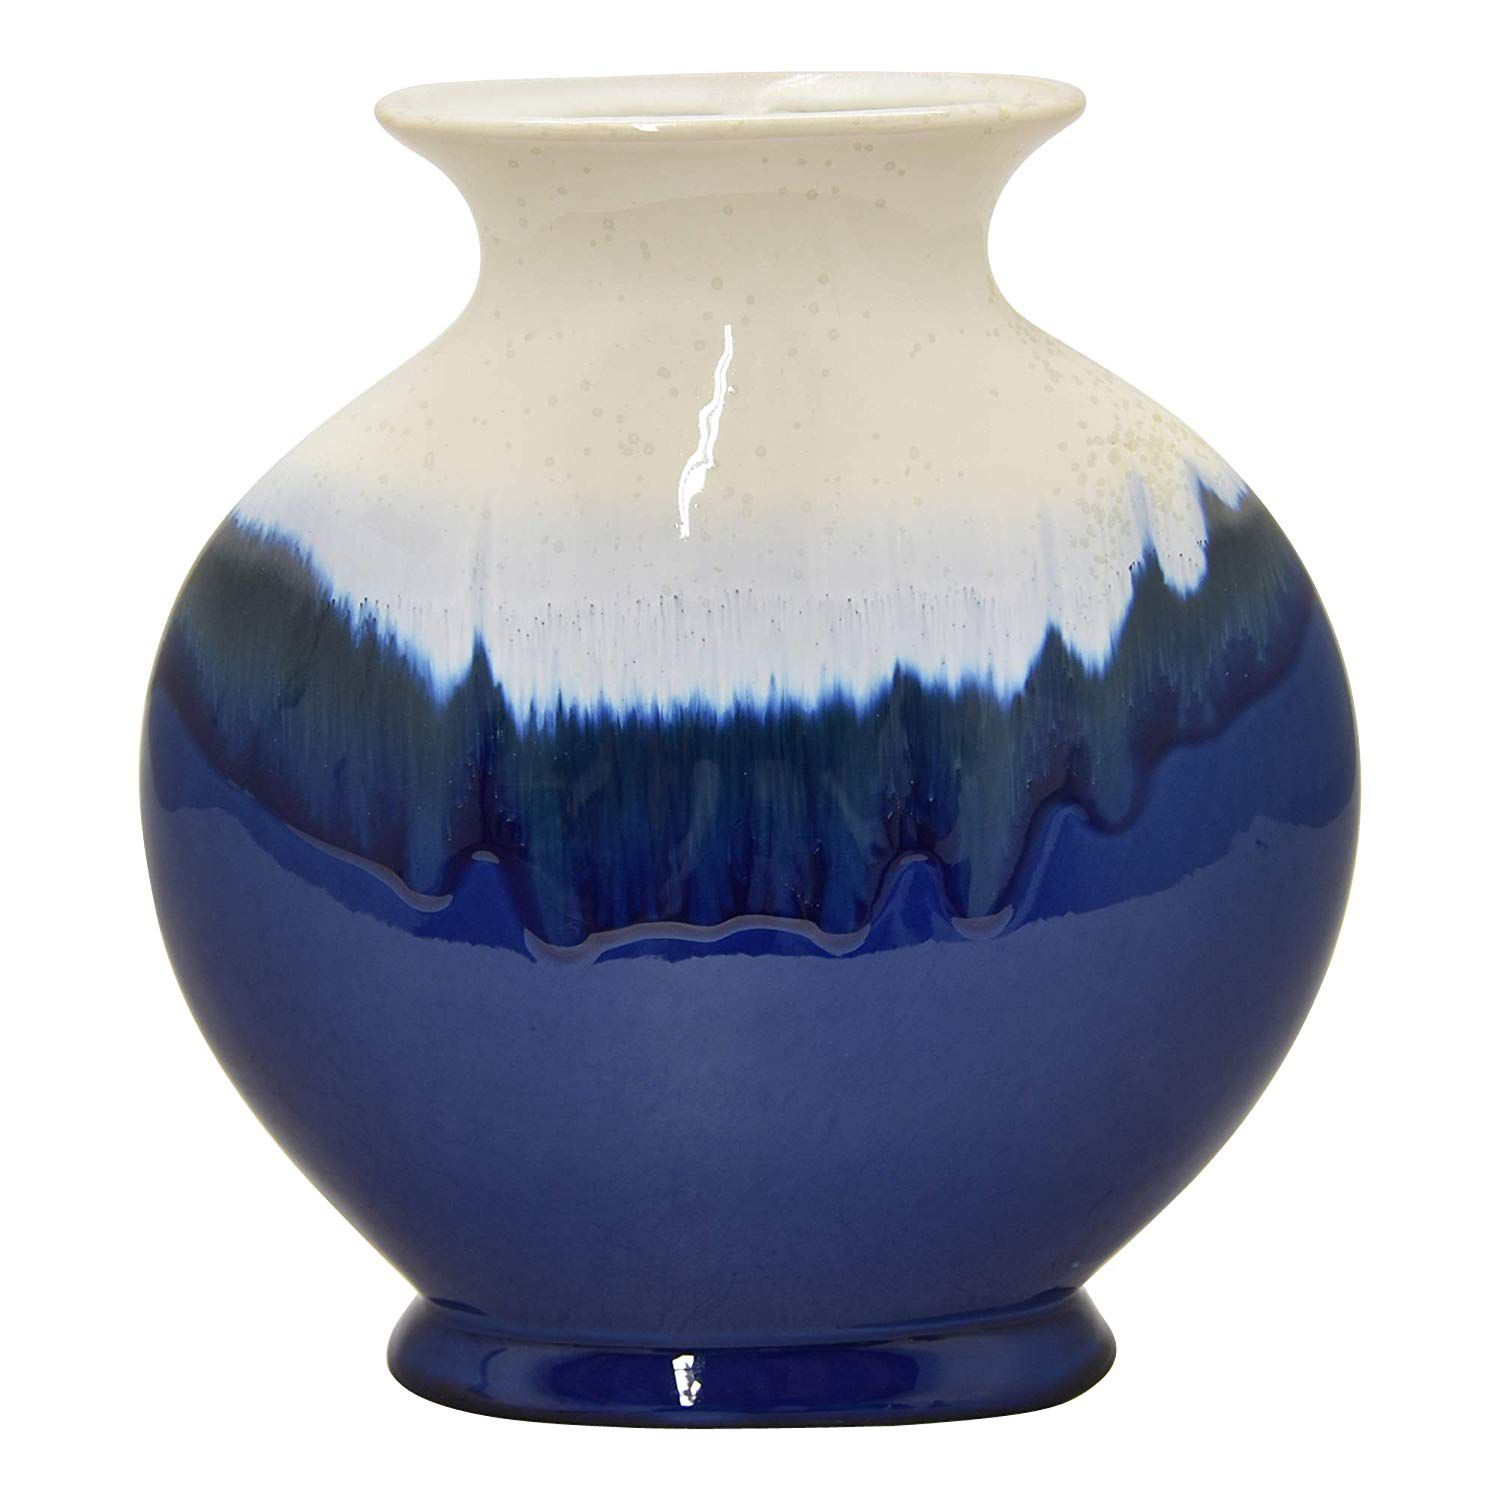 Three Hands Ceramic Vase—Amazon Mother's Day Gifts